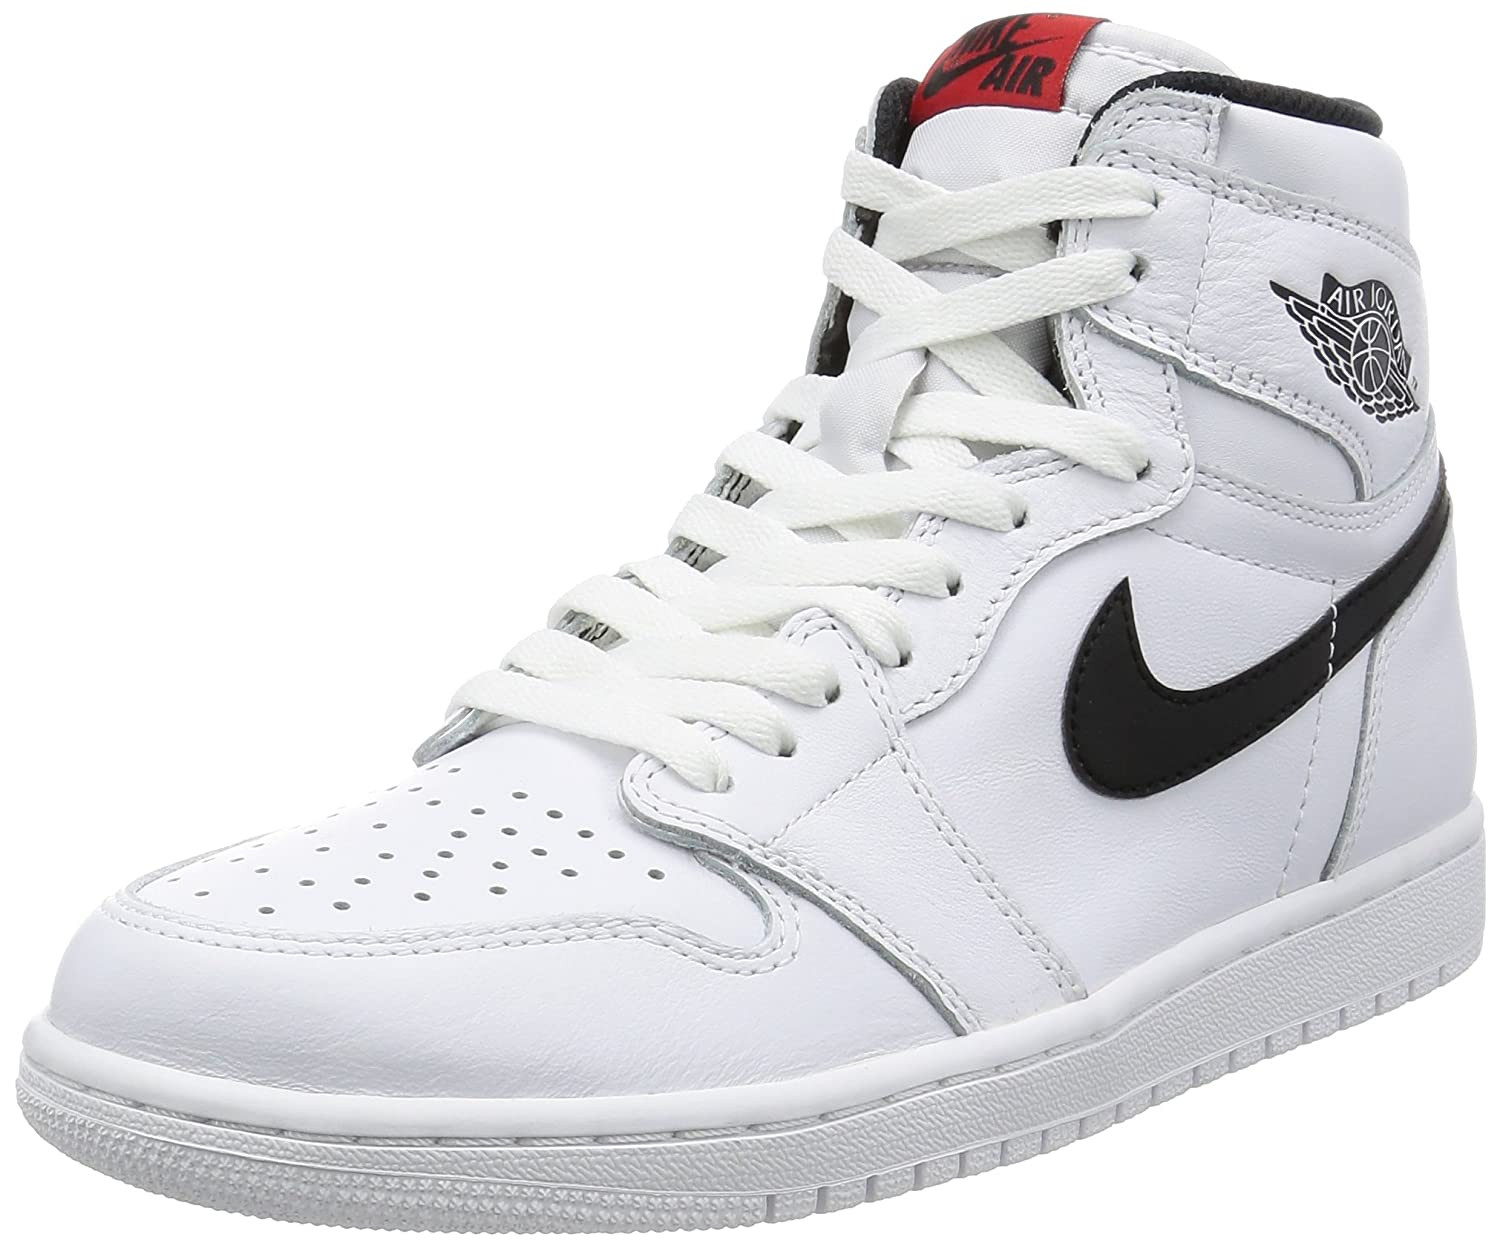 27badad3ddf 70%OFF Nike Jordan Men s Air Jordan 1 Retro High OG Basketball Shoe ...